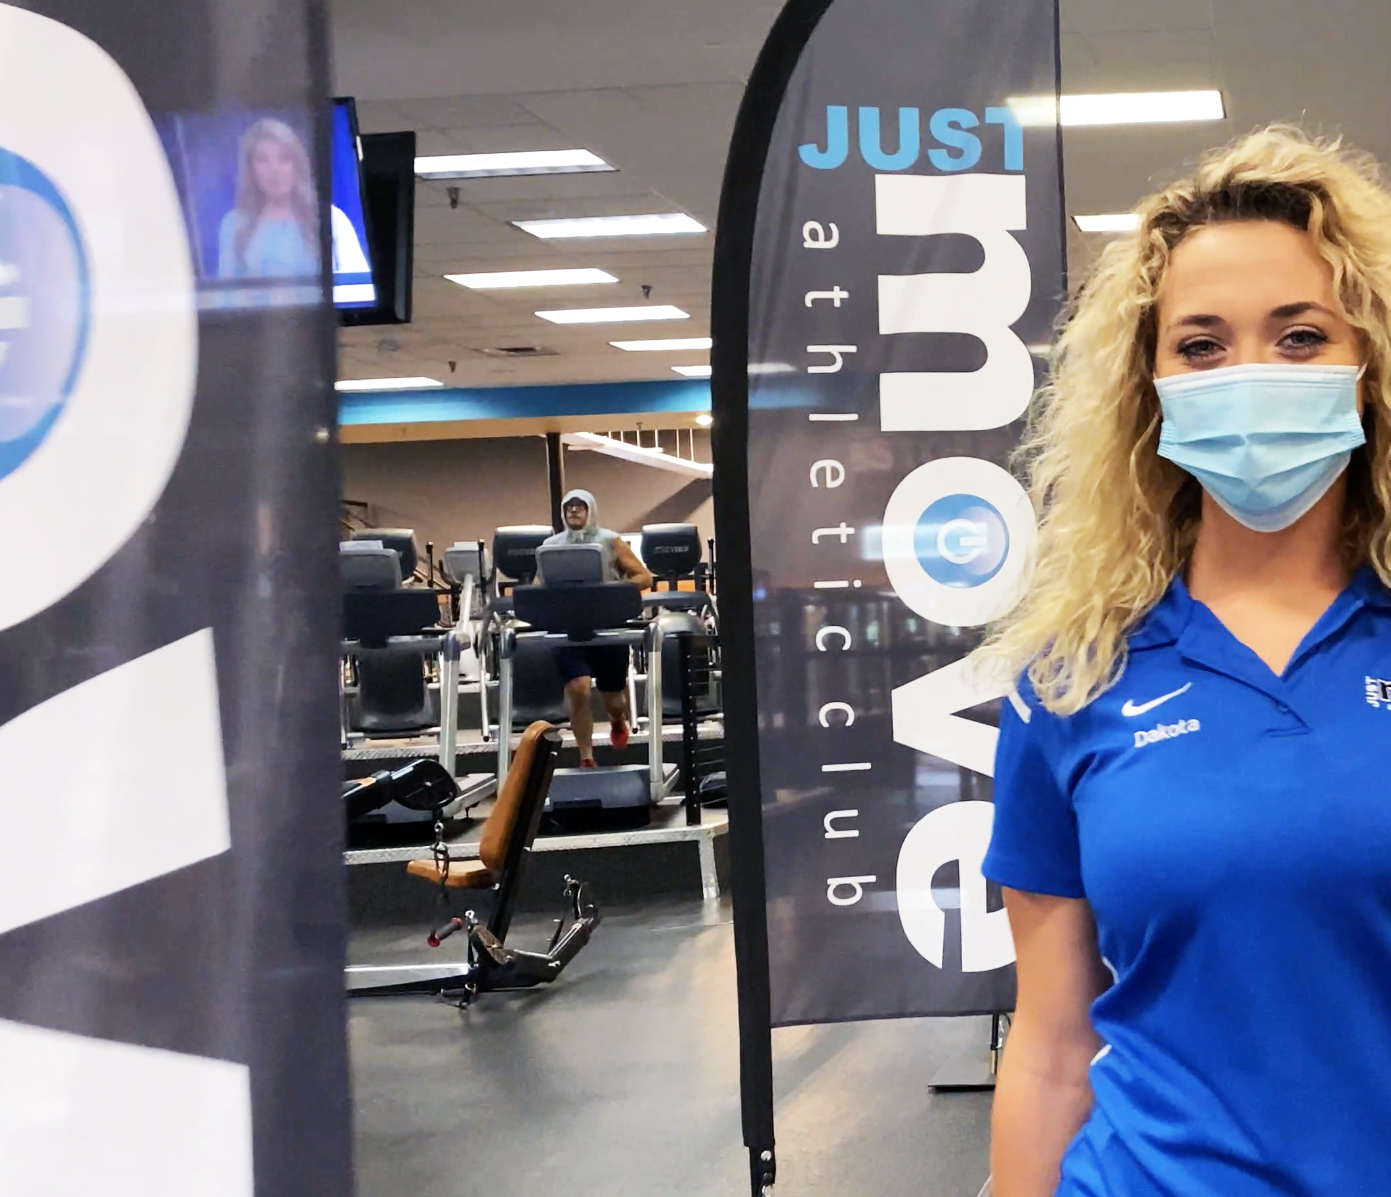 Woman wearing a mask at just move.